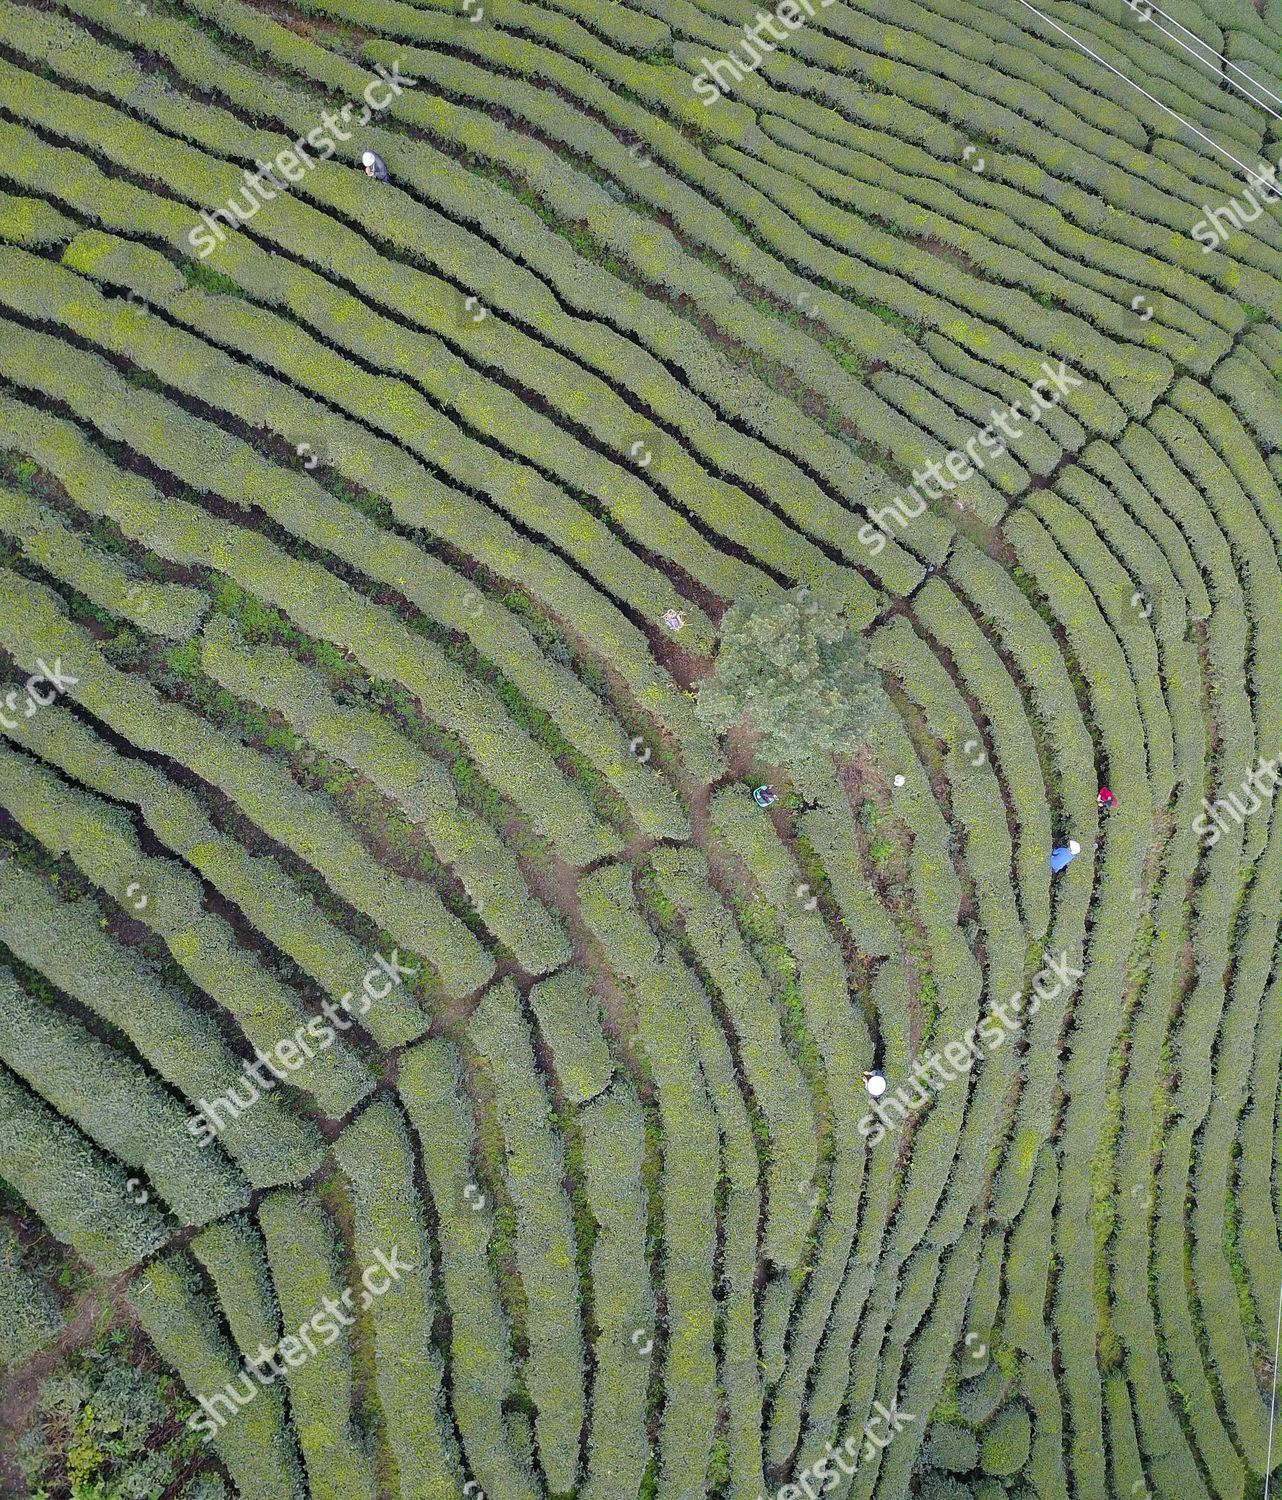 Scenery Tea Plantations Puan Southwest Chinas Guizhou